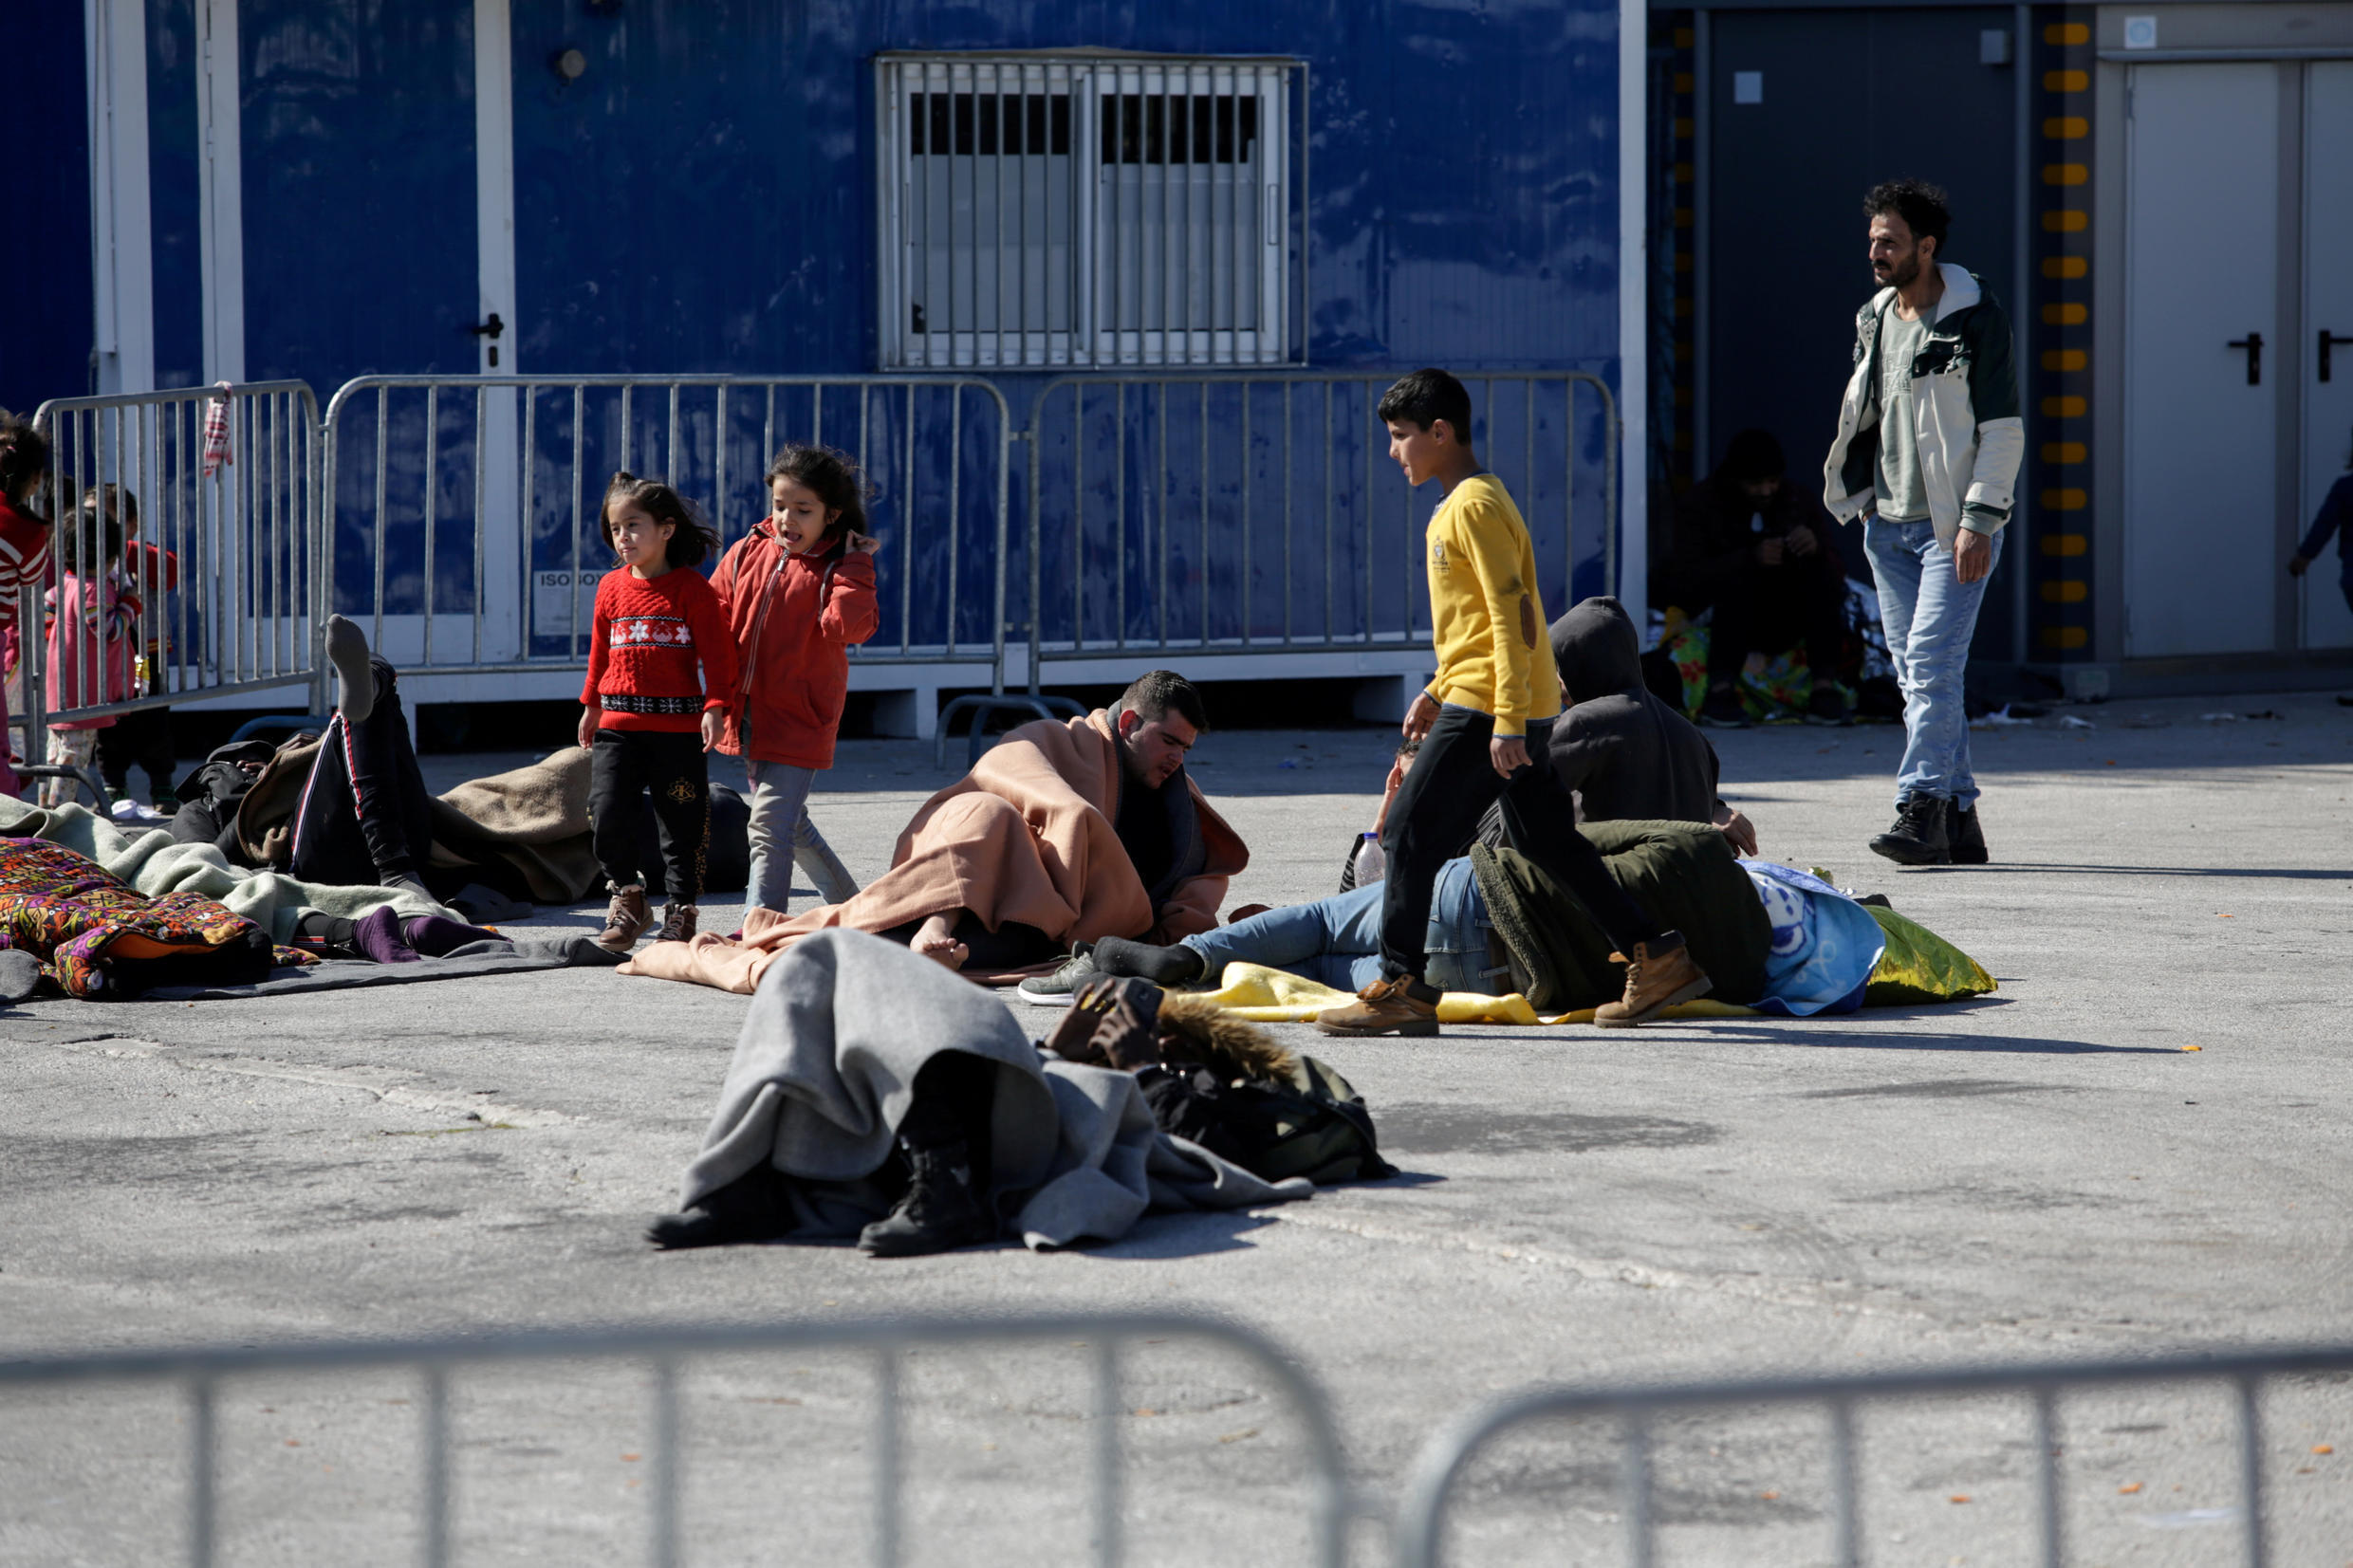 2020-03-03T151203Z_1721303260_RC2DCF95SNRW_RTRMADP_3_SYRIA-SECURITY-GREECE-LESBOS